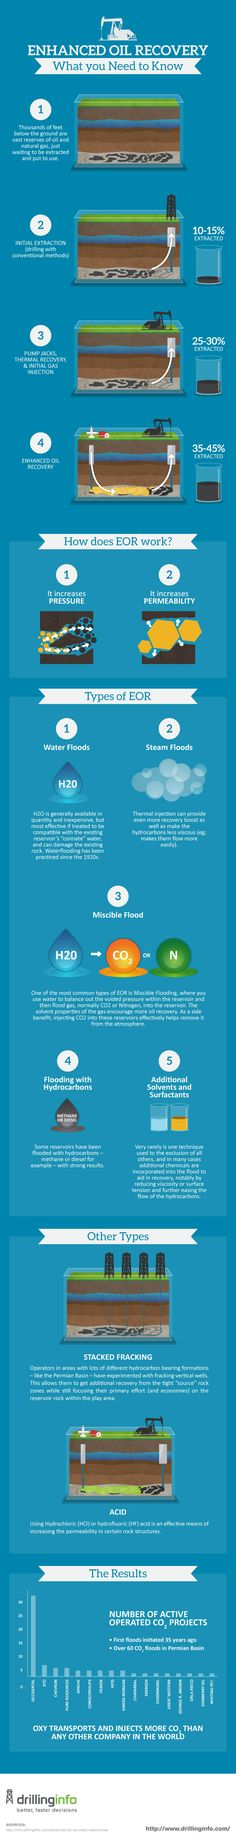 Enhanced Oil Recovery Part 2 |Infographic|